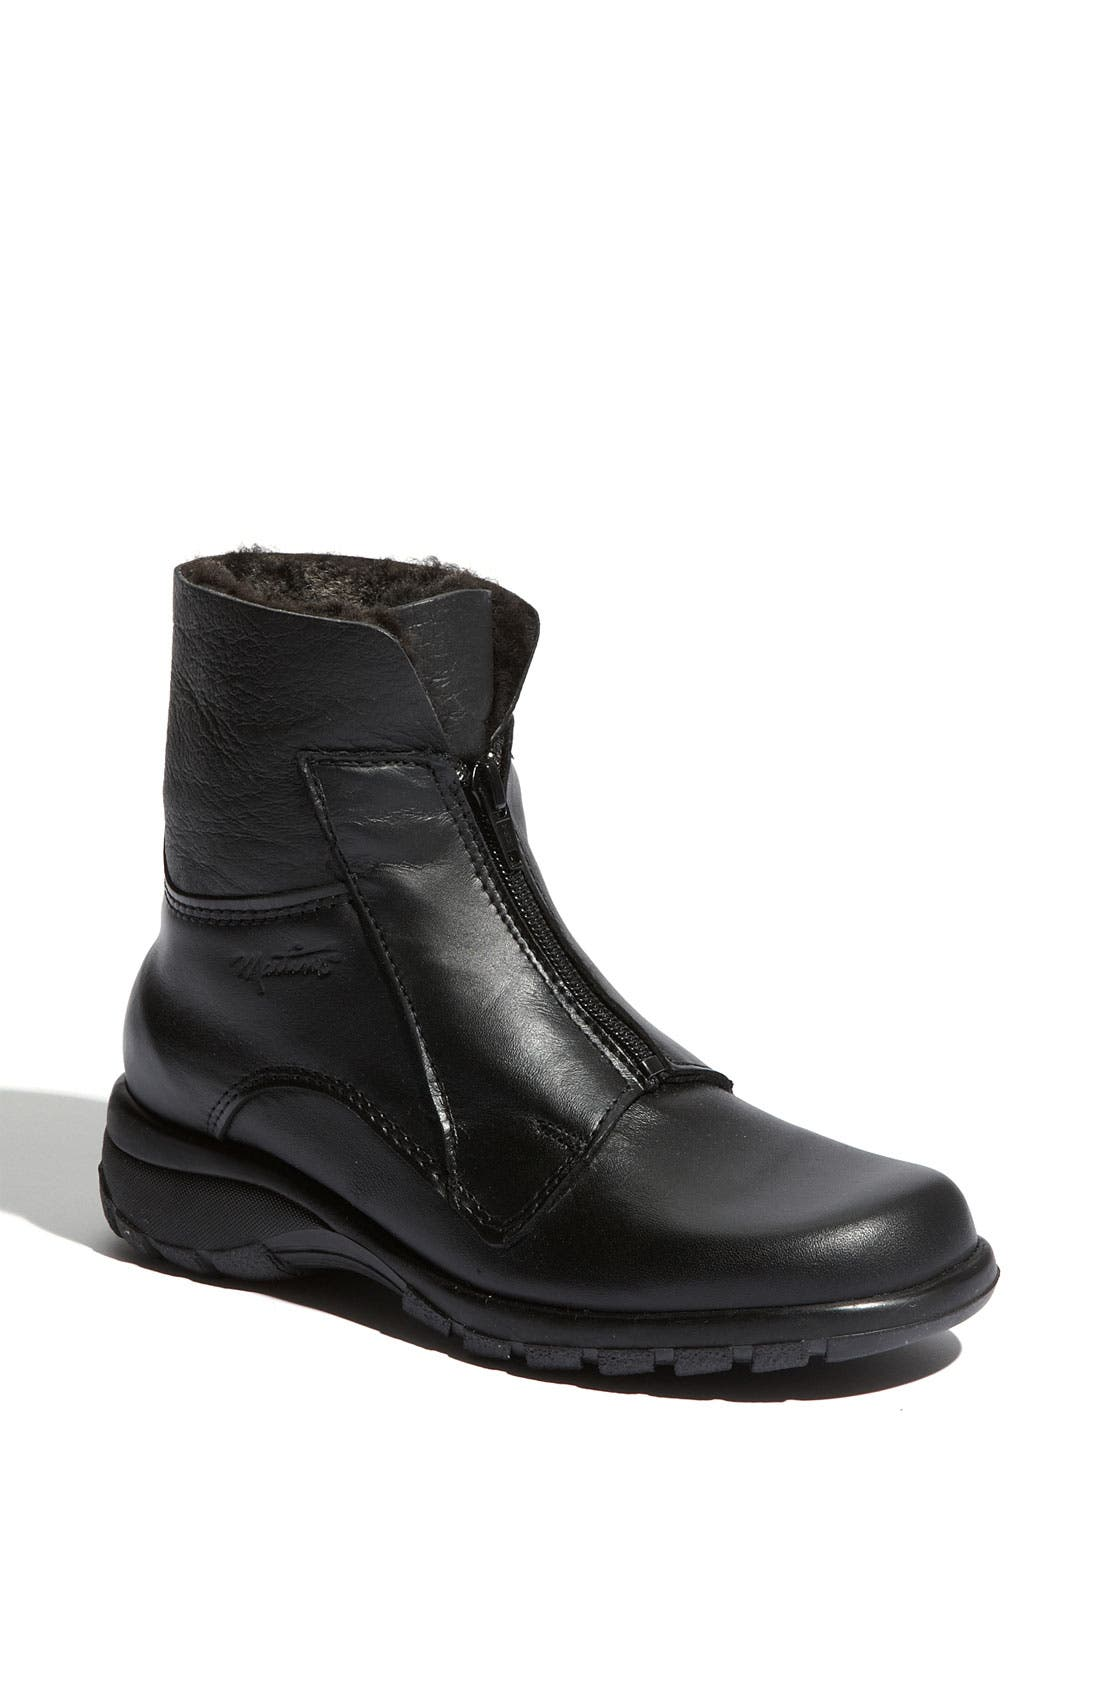 Alternate Image 1 Selected - Martino 'Puppy' Waterproof Boot